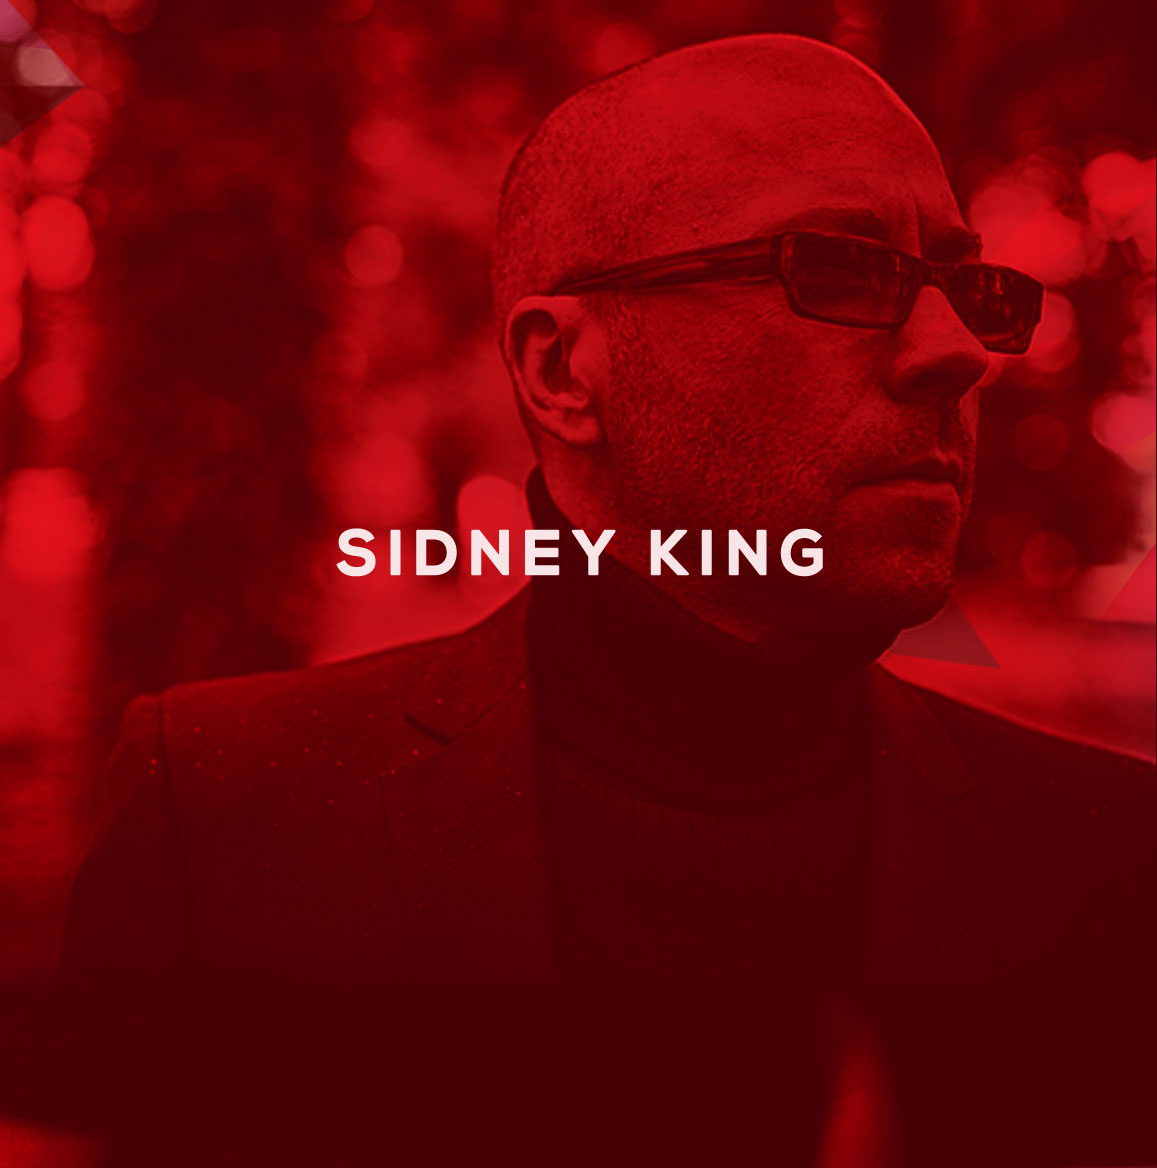 HP-Act-sidney-king